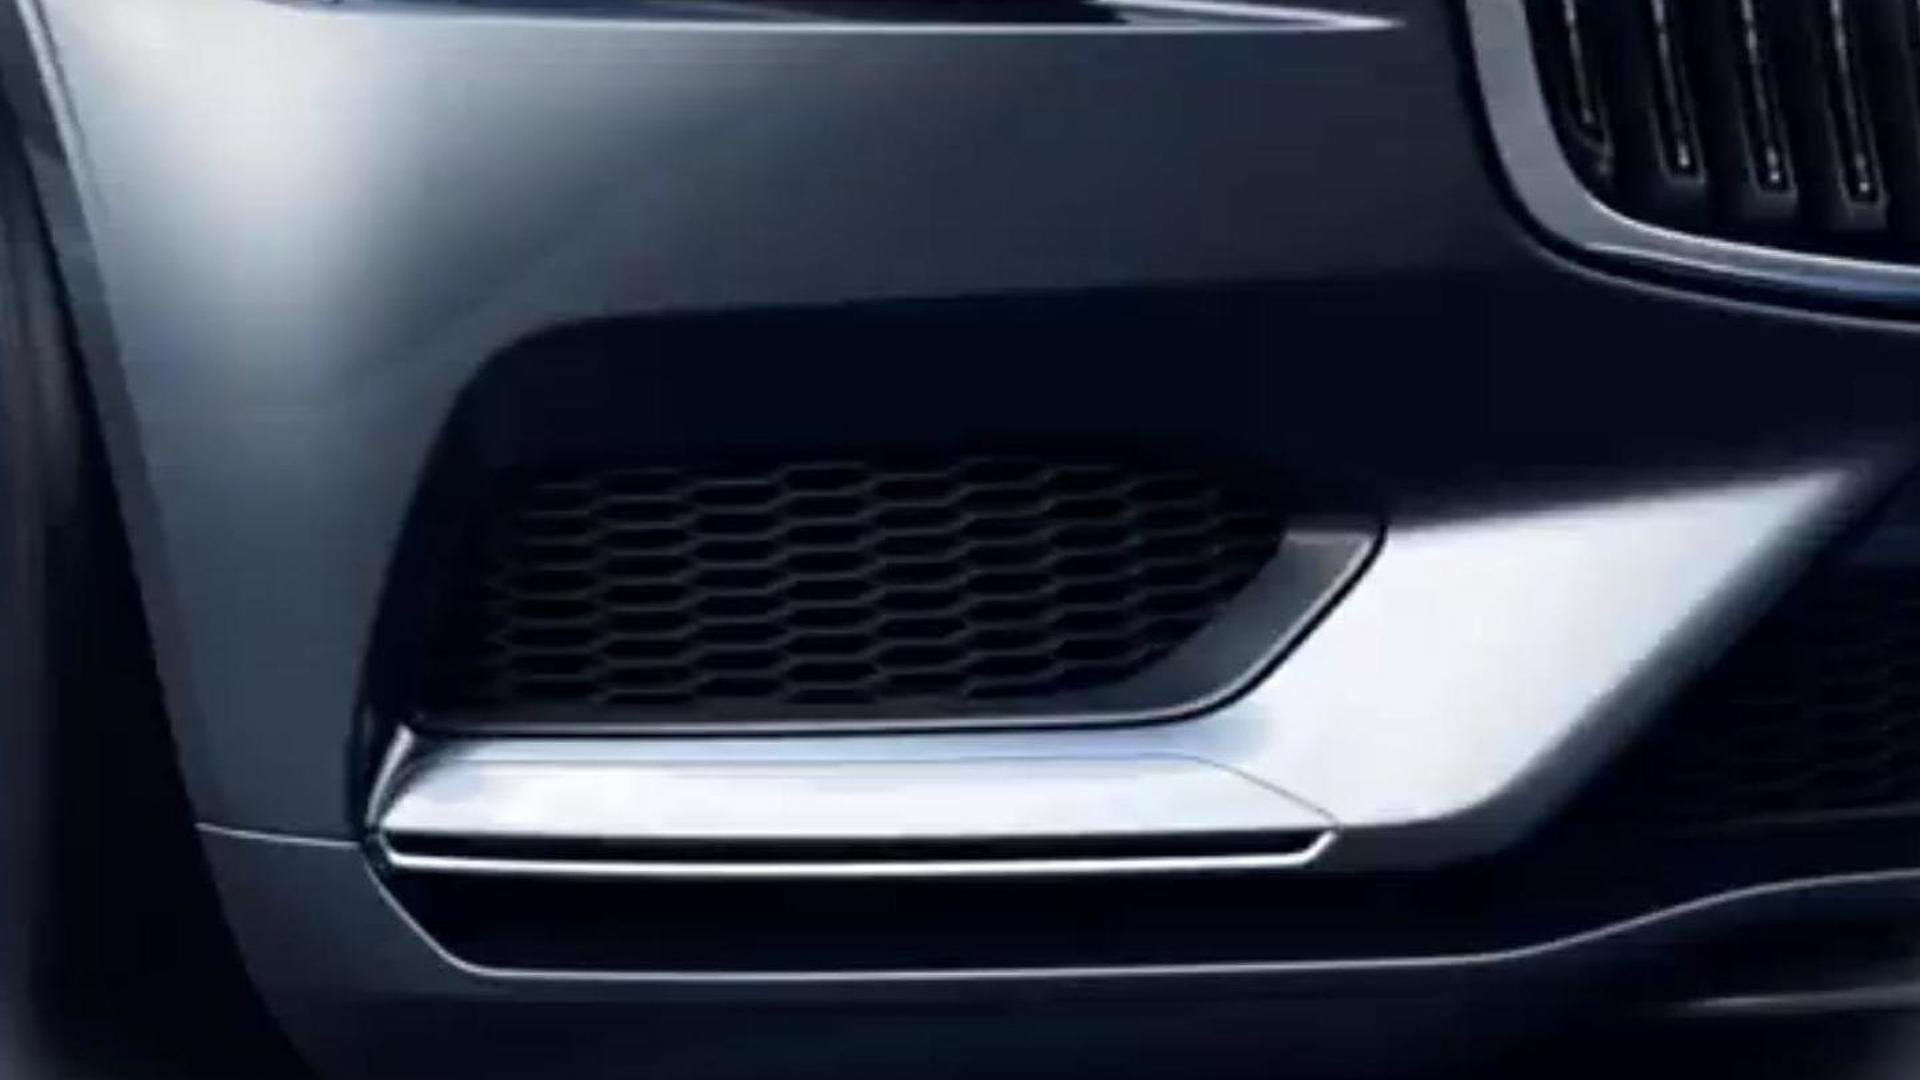 volvo concept c coupe teased again ahead of tomorrow\u0027s reveal [videos]